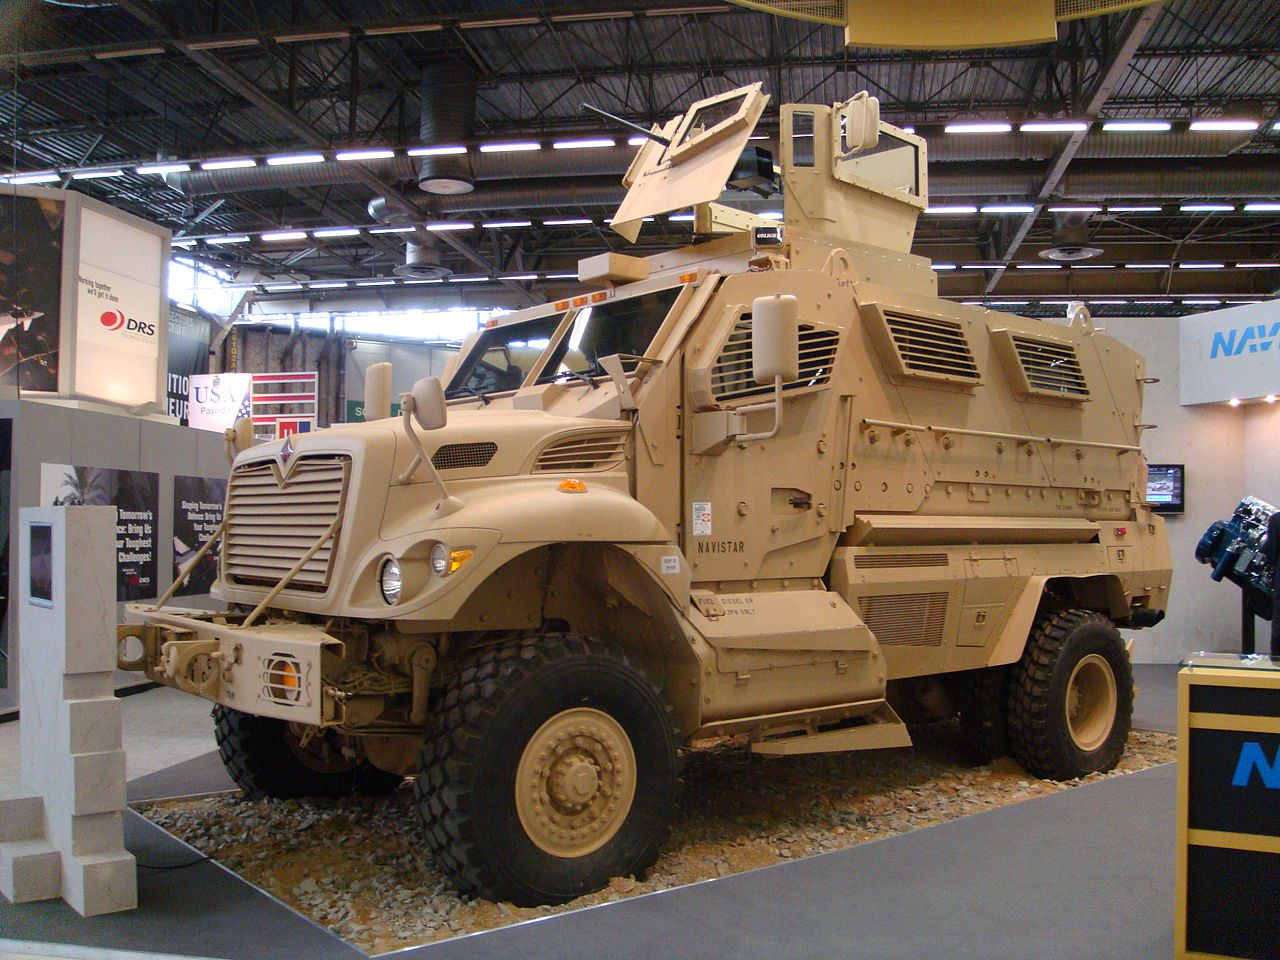 Sand-colored military armor vehicle